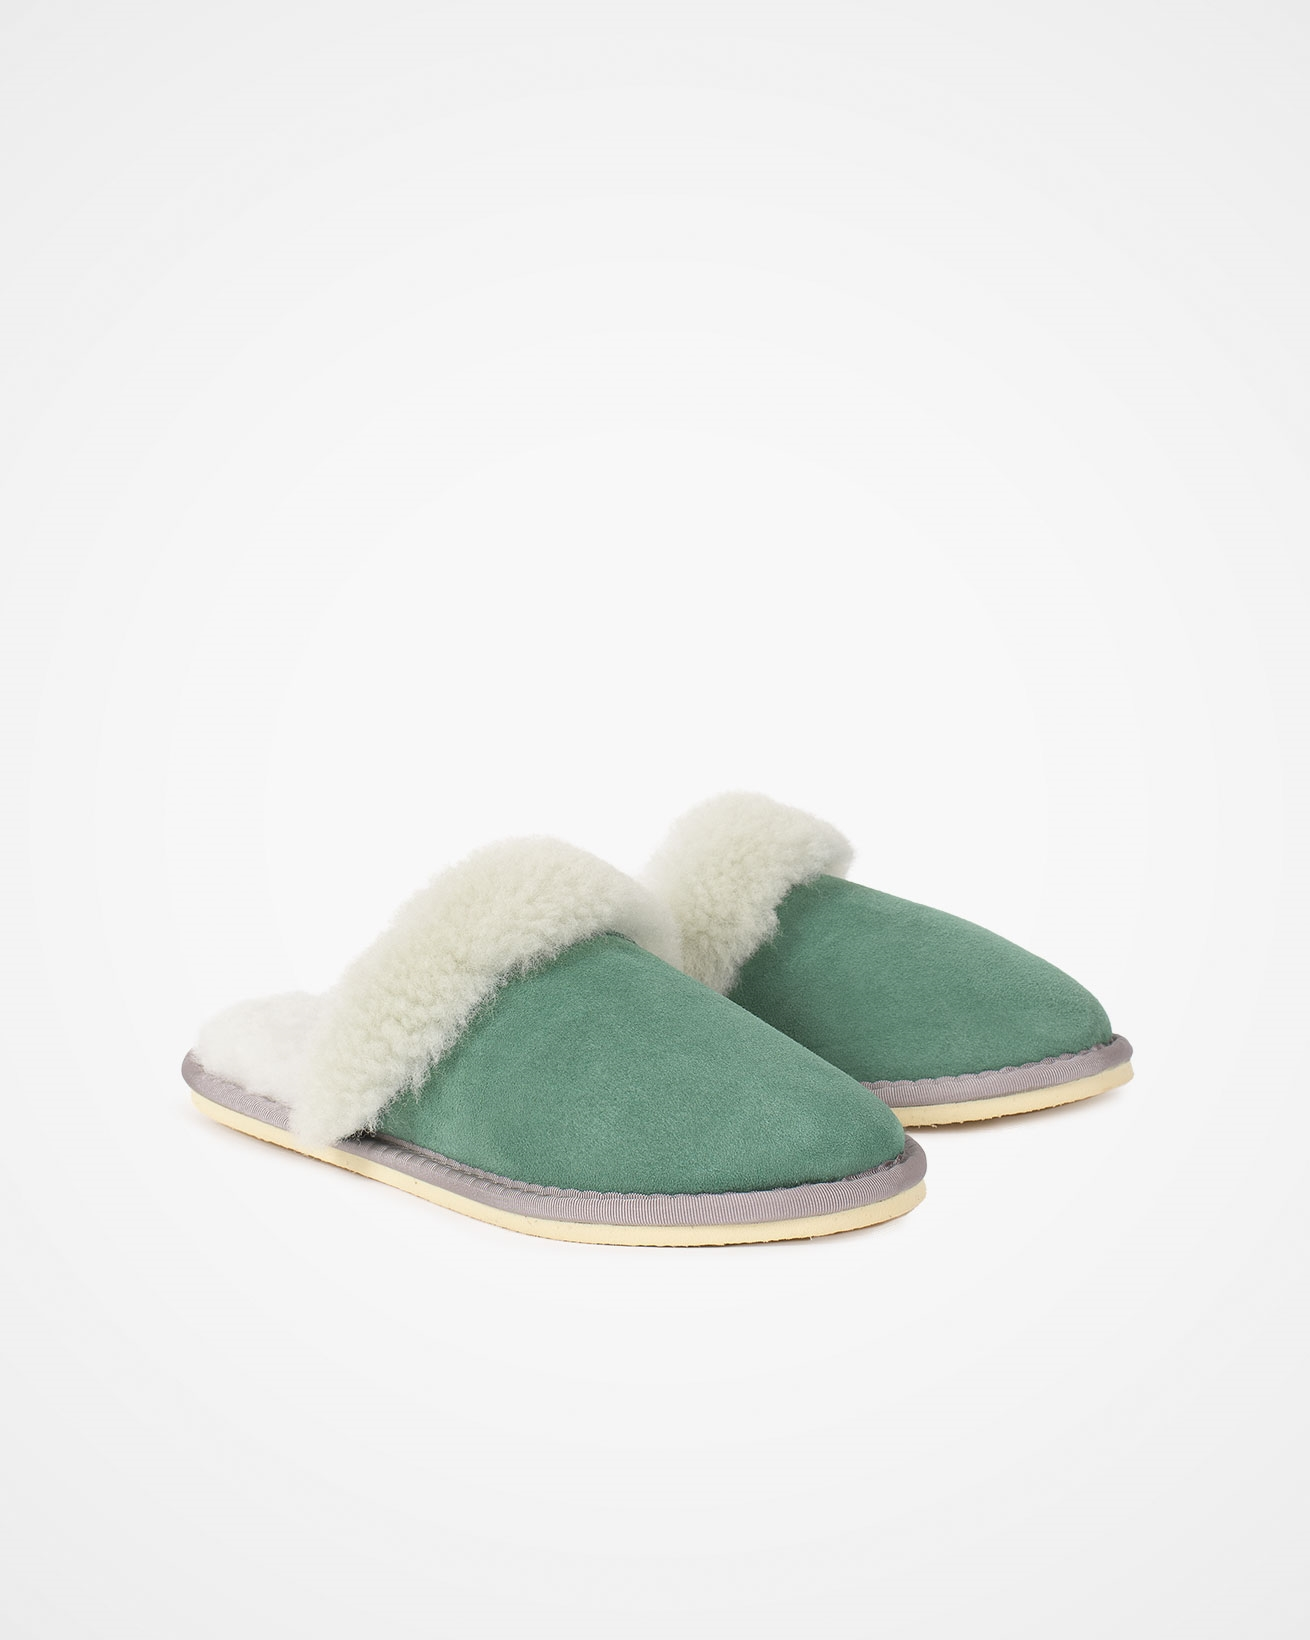 6786_ladies-turnback-mules_sea-green_pair.jpg